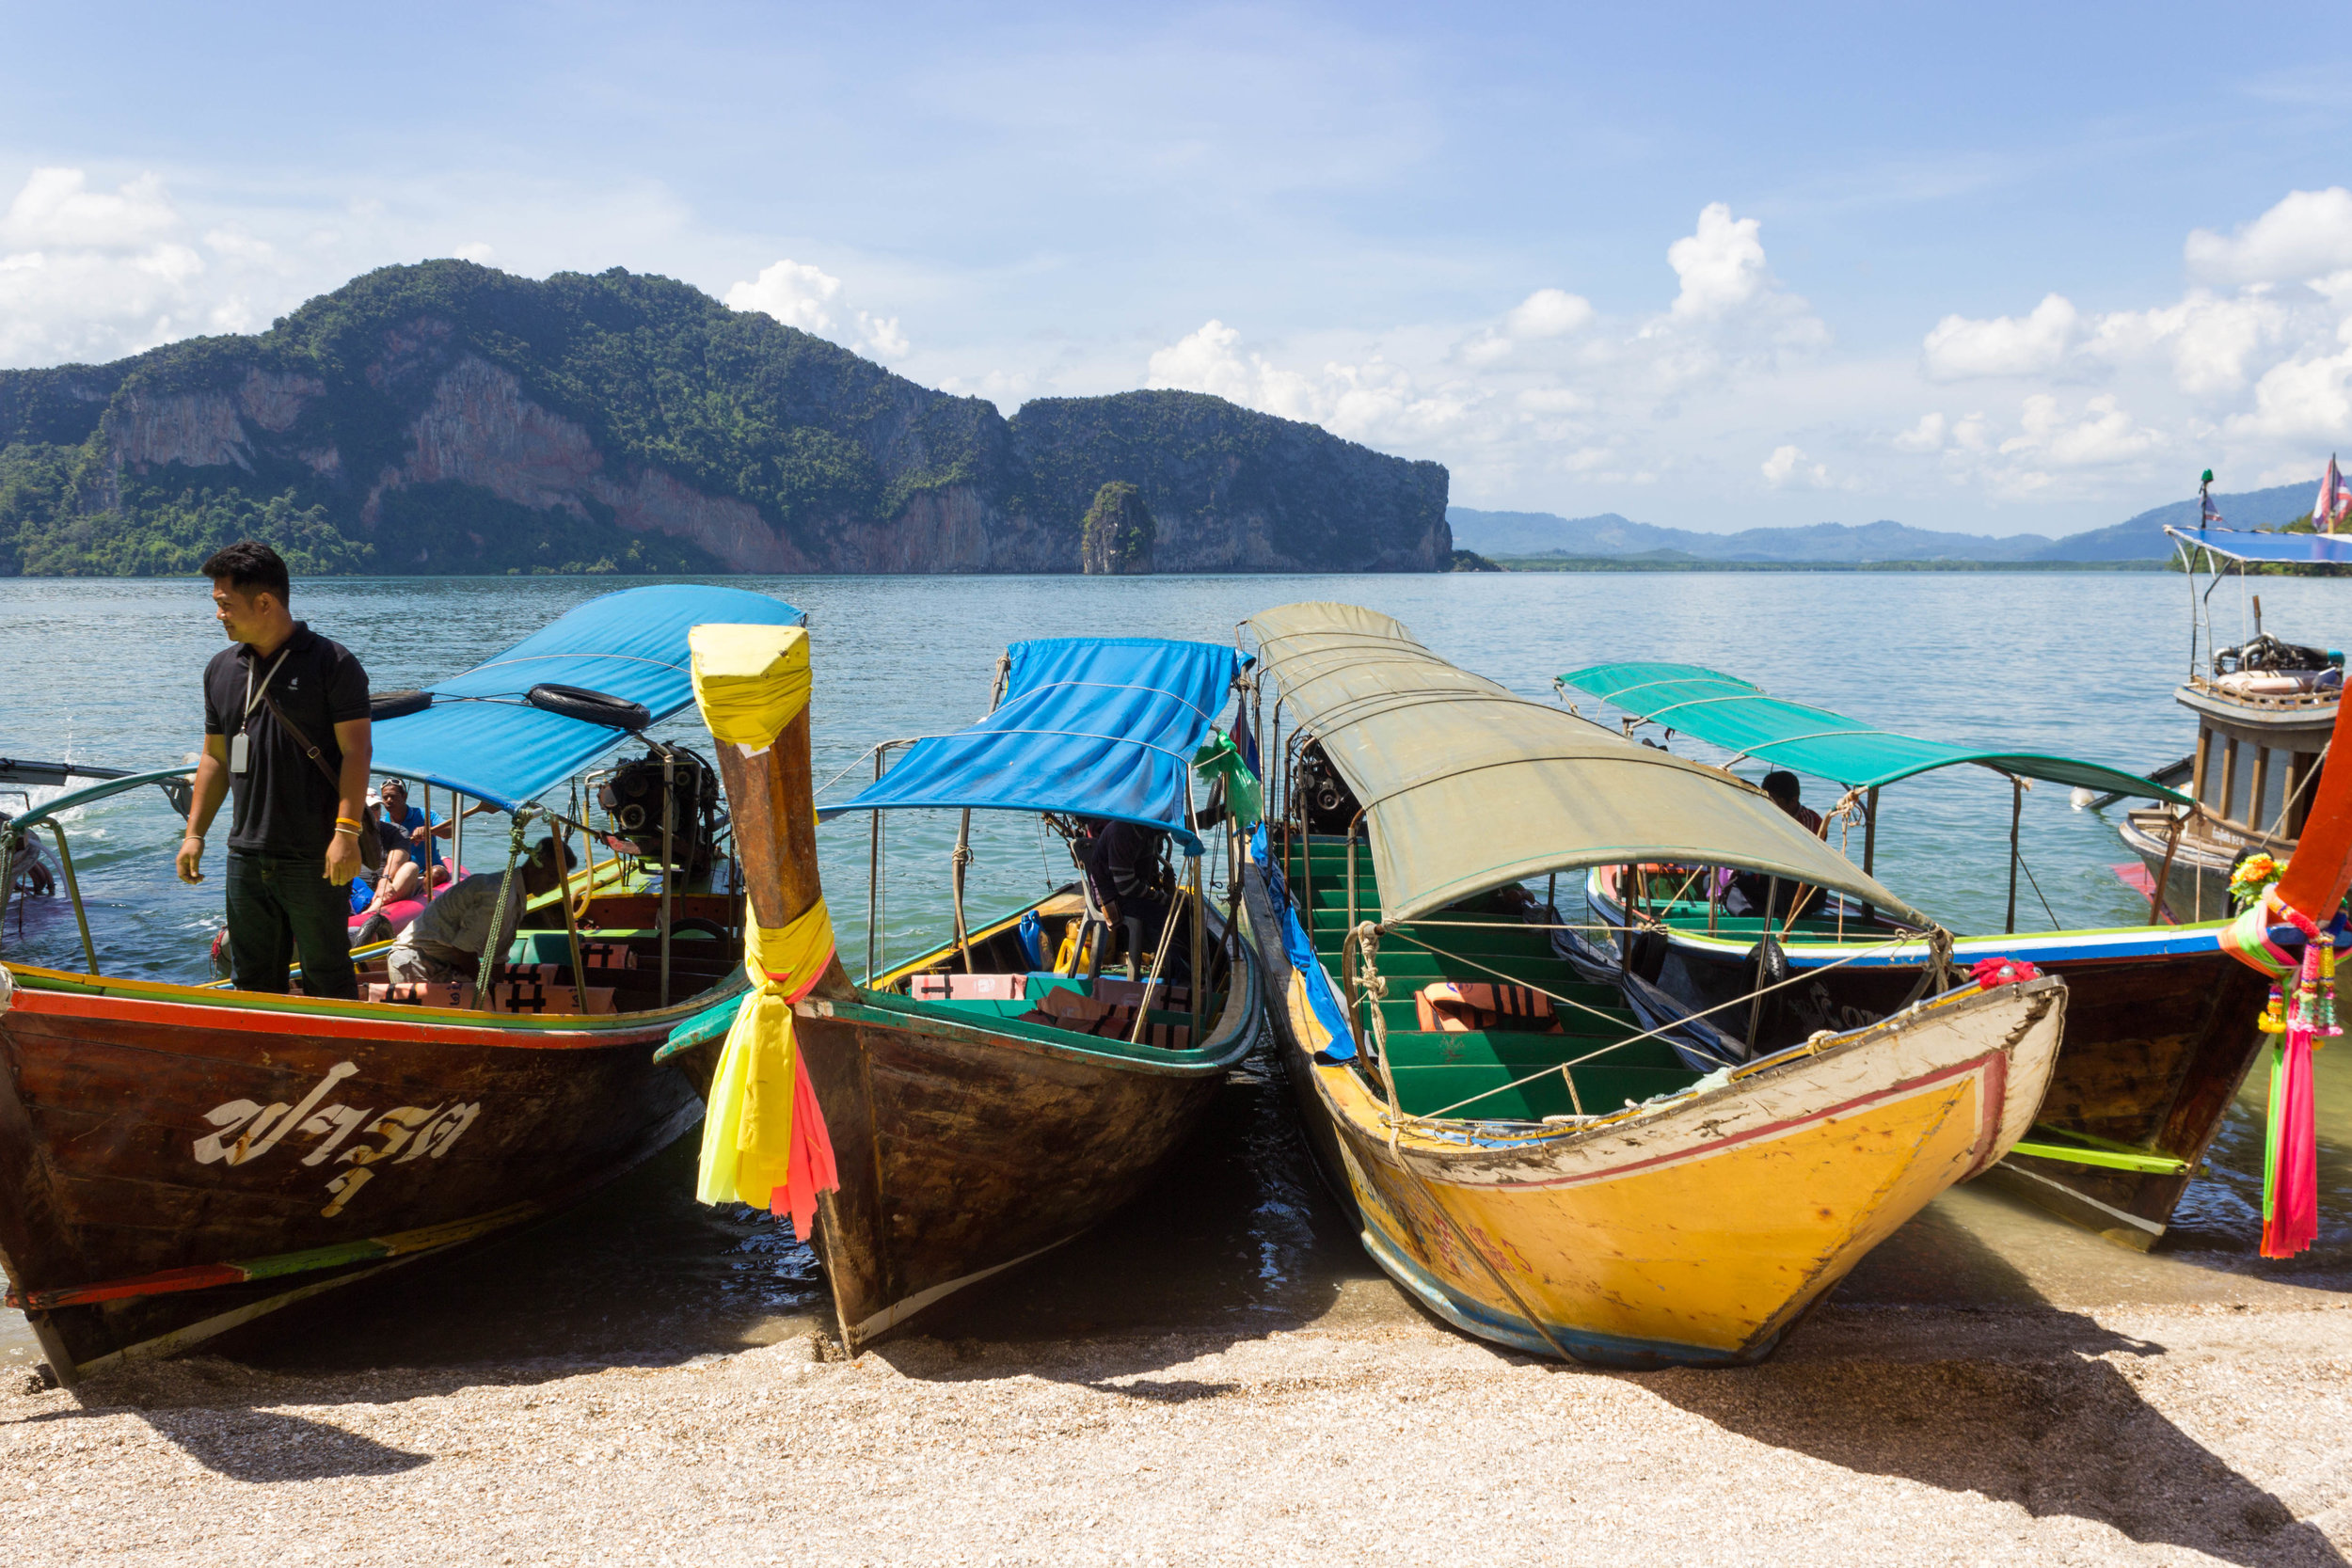 Colorful boats drop off guests at James Bond Island